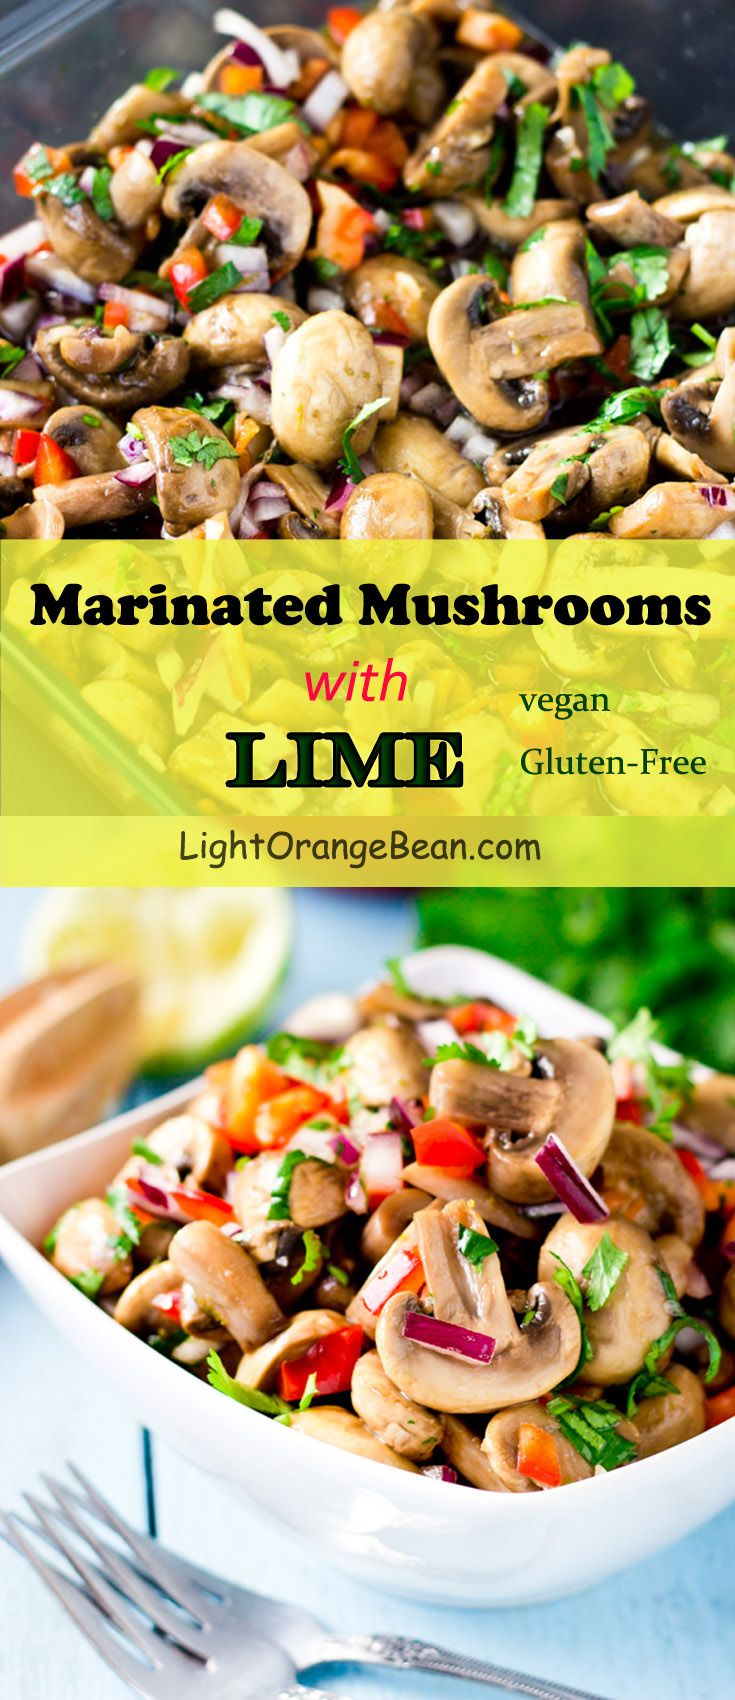 With just a few minutes of simple preparation, you can easily serve these colorful, appealing, and lemony marinated mushrooms that will impress everybody at the table, even those who are not big mushroom fans.